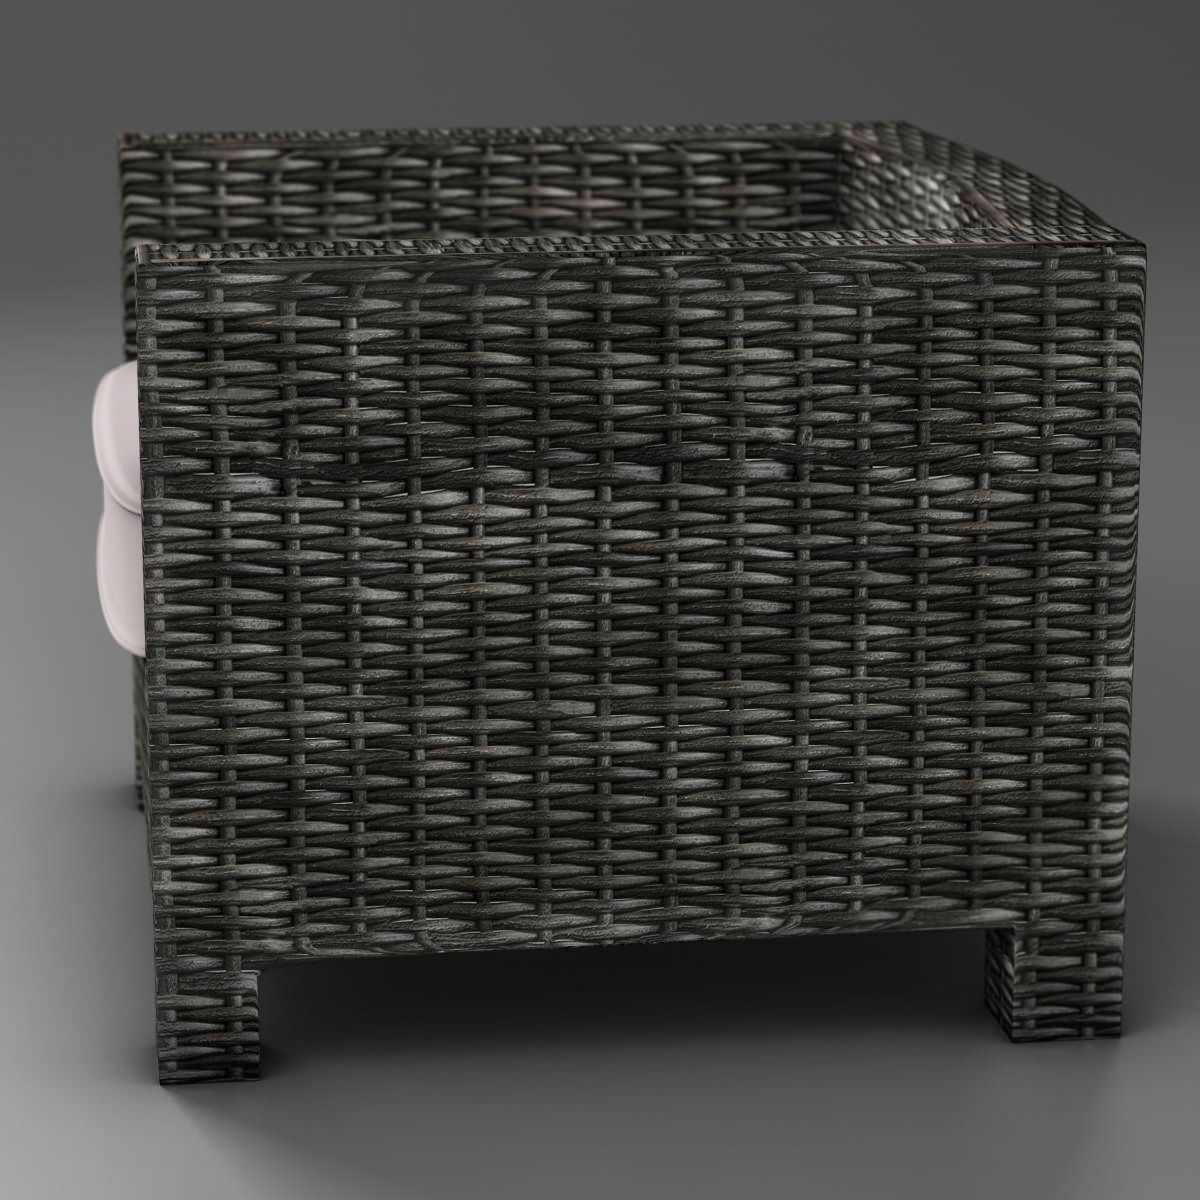 wicker couch 3d model 3ds max fbx c4d ma mb obj 162335